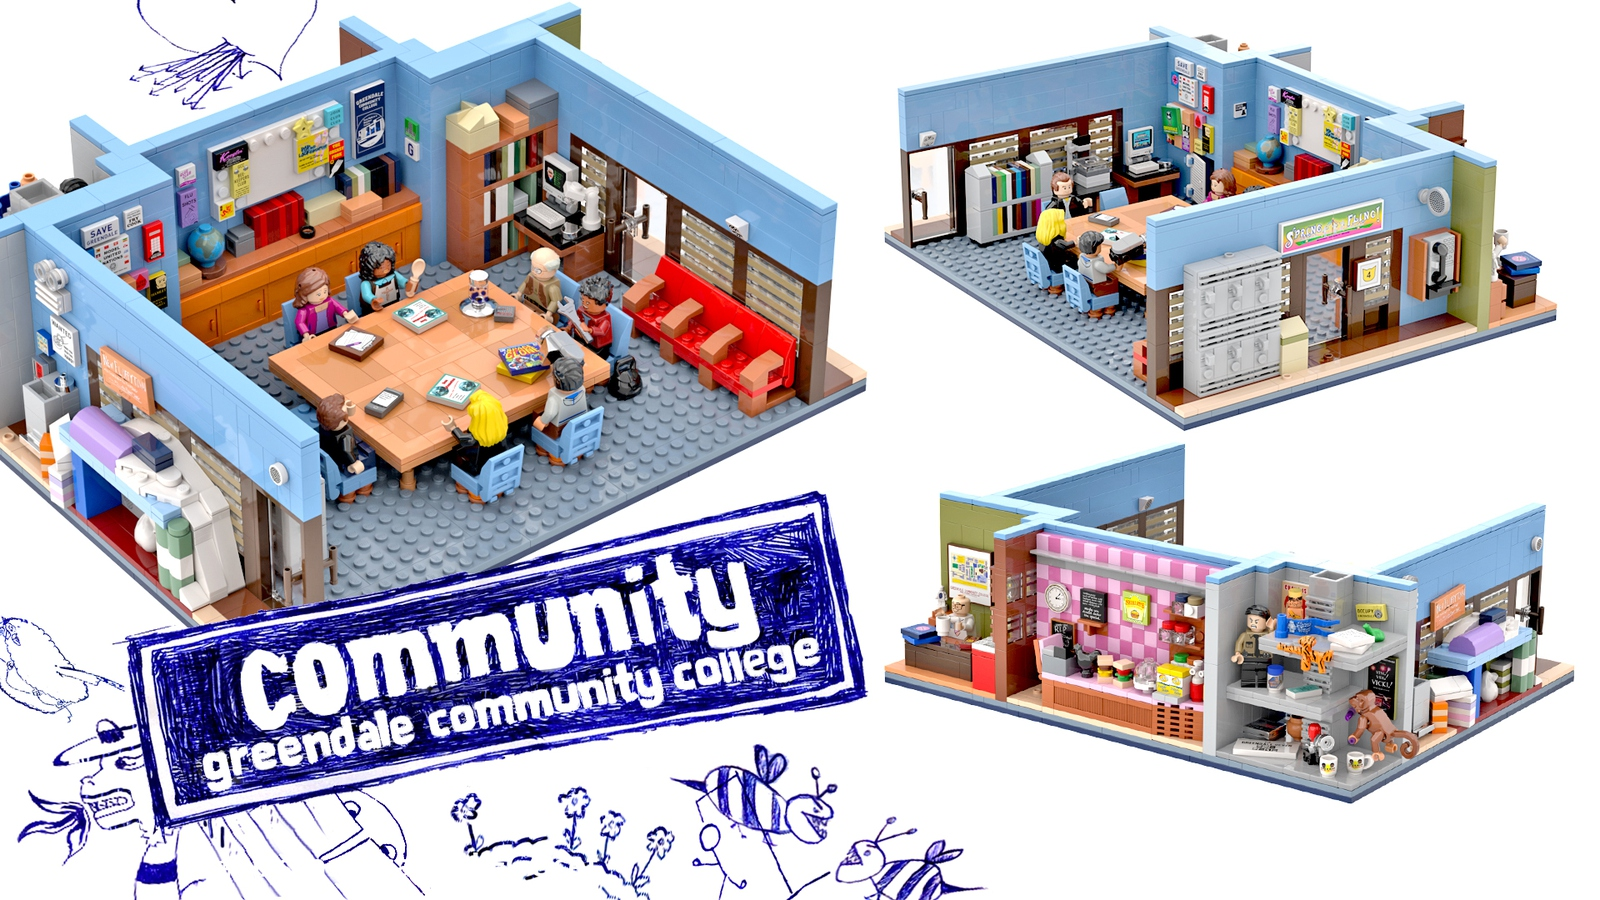 lego-ideas-community-greendale-community-college-bulldoozer21-4 zusammengebaut.com